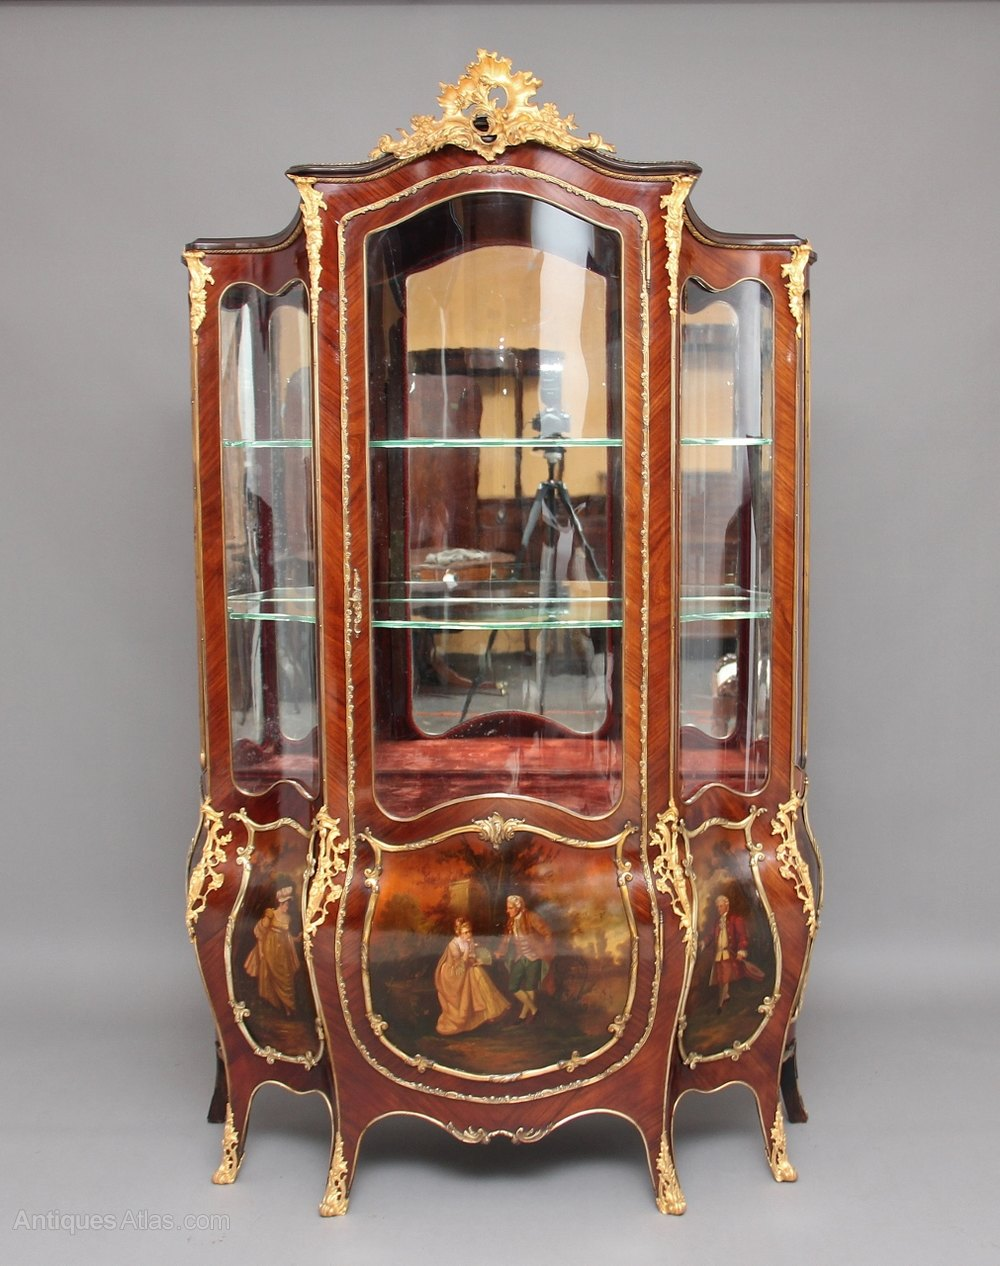 19th Century French Kingwood And Ormolu Vitrine Antiques